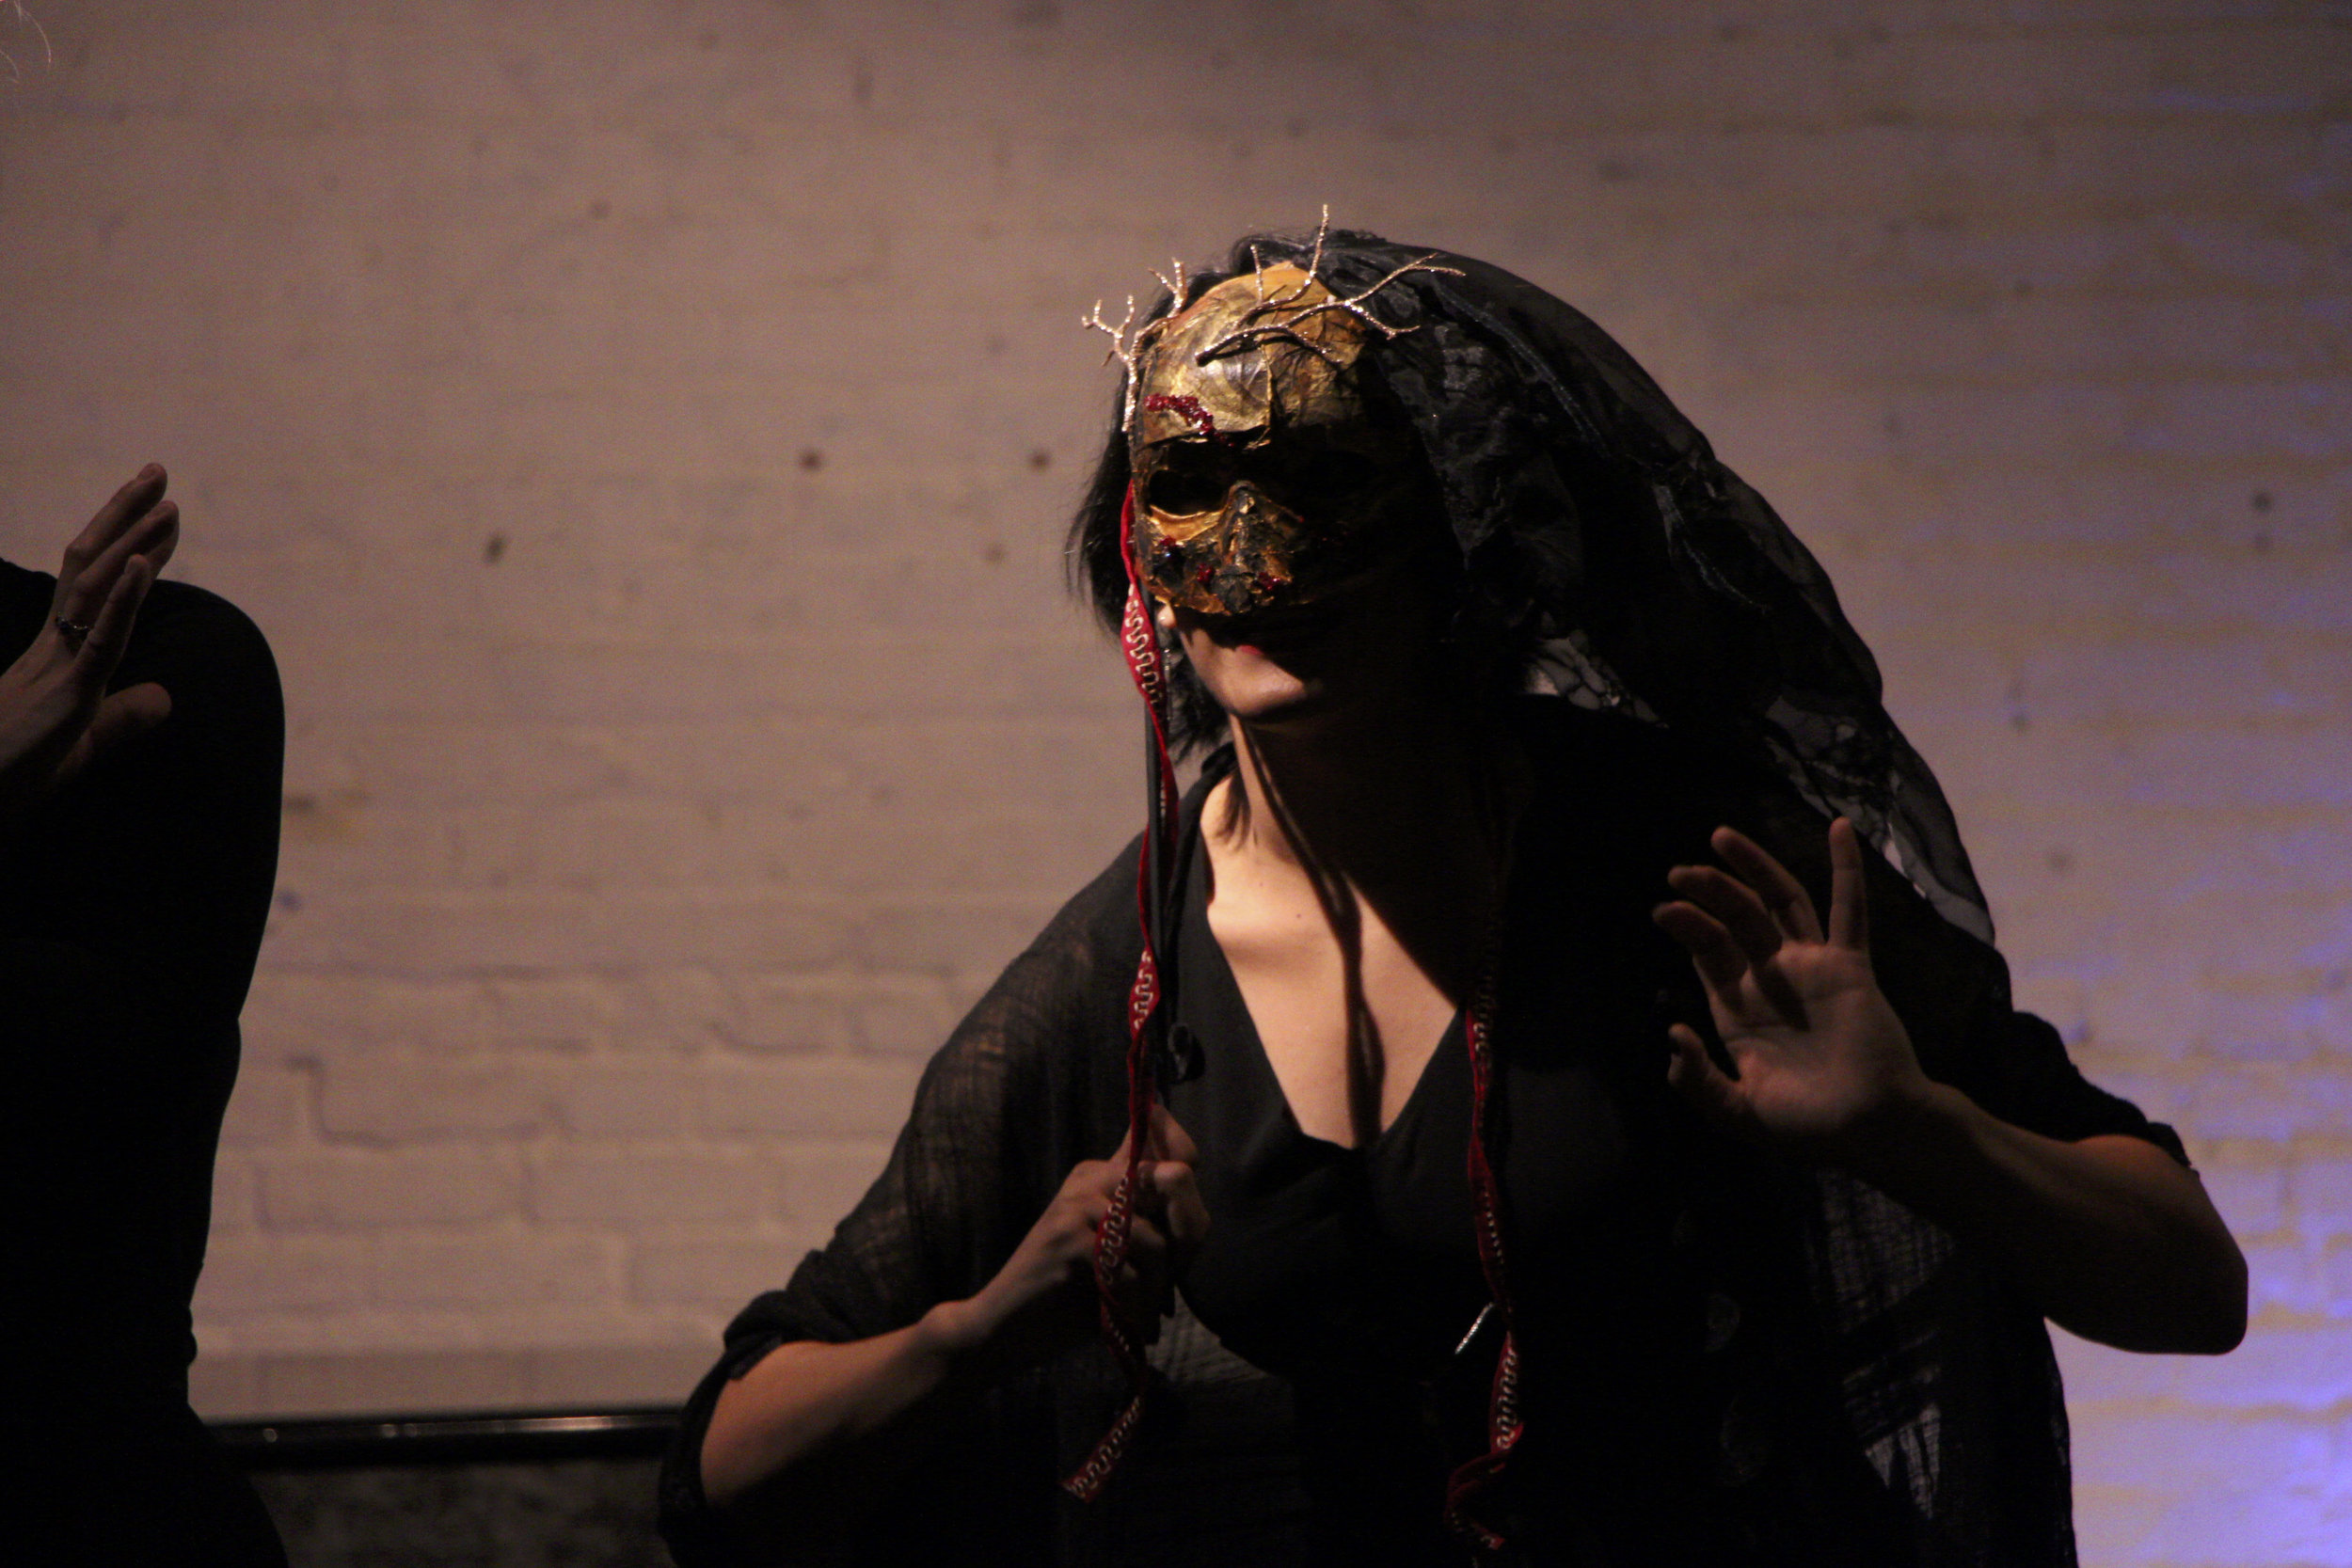 Aumna Iqbal in Magic and Mayhem, mask by Claire Townsend. Photo credit: Orlando Mendiola